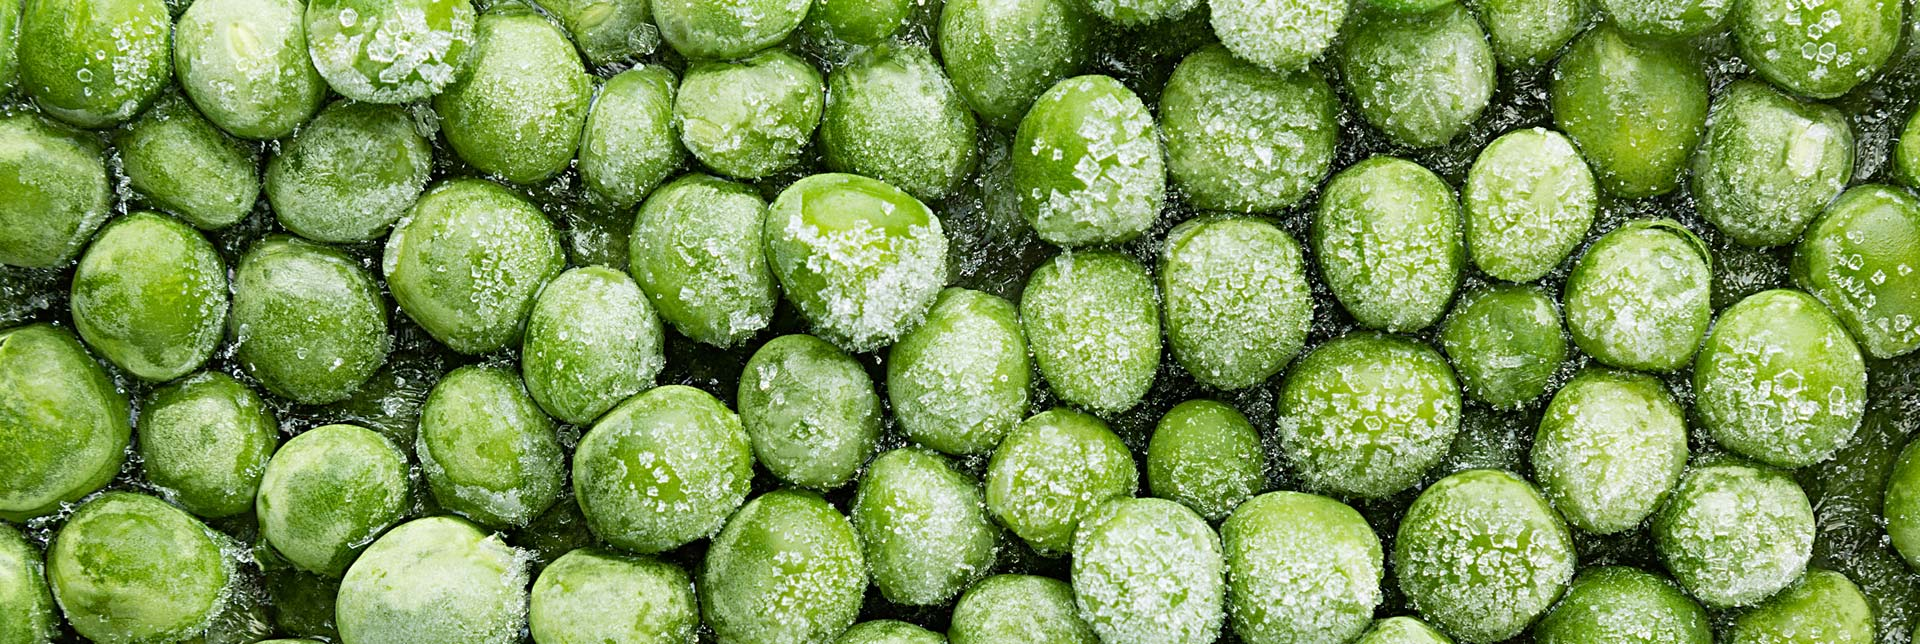 Frozen Peas | How It's Made